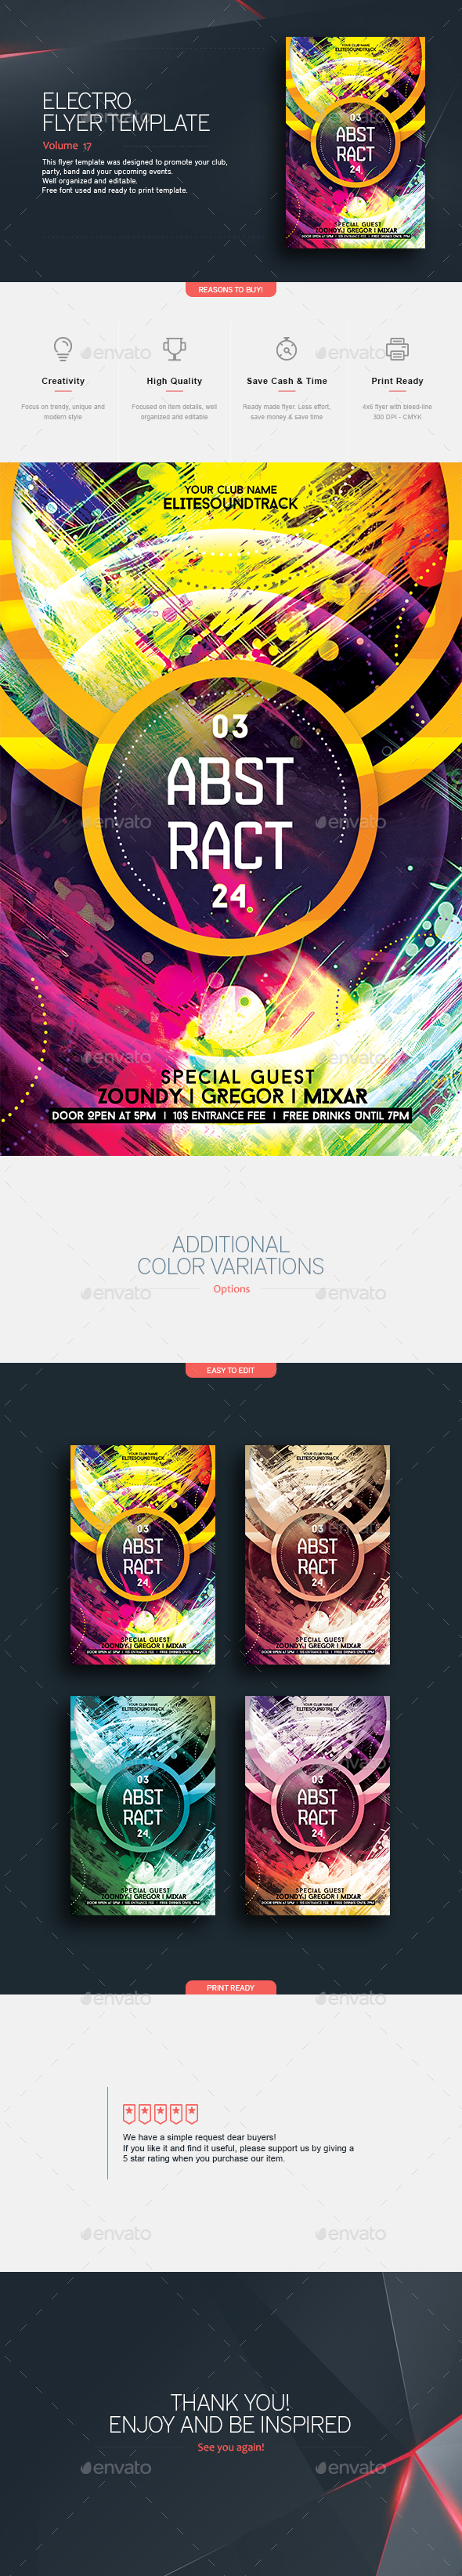 Abstract - Flyer Template - Clubs & Parties Events